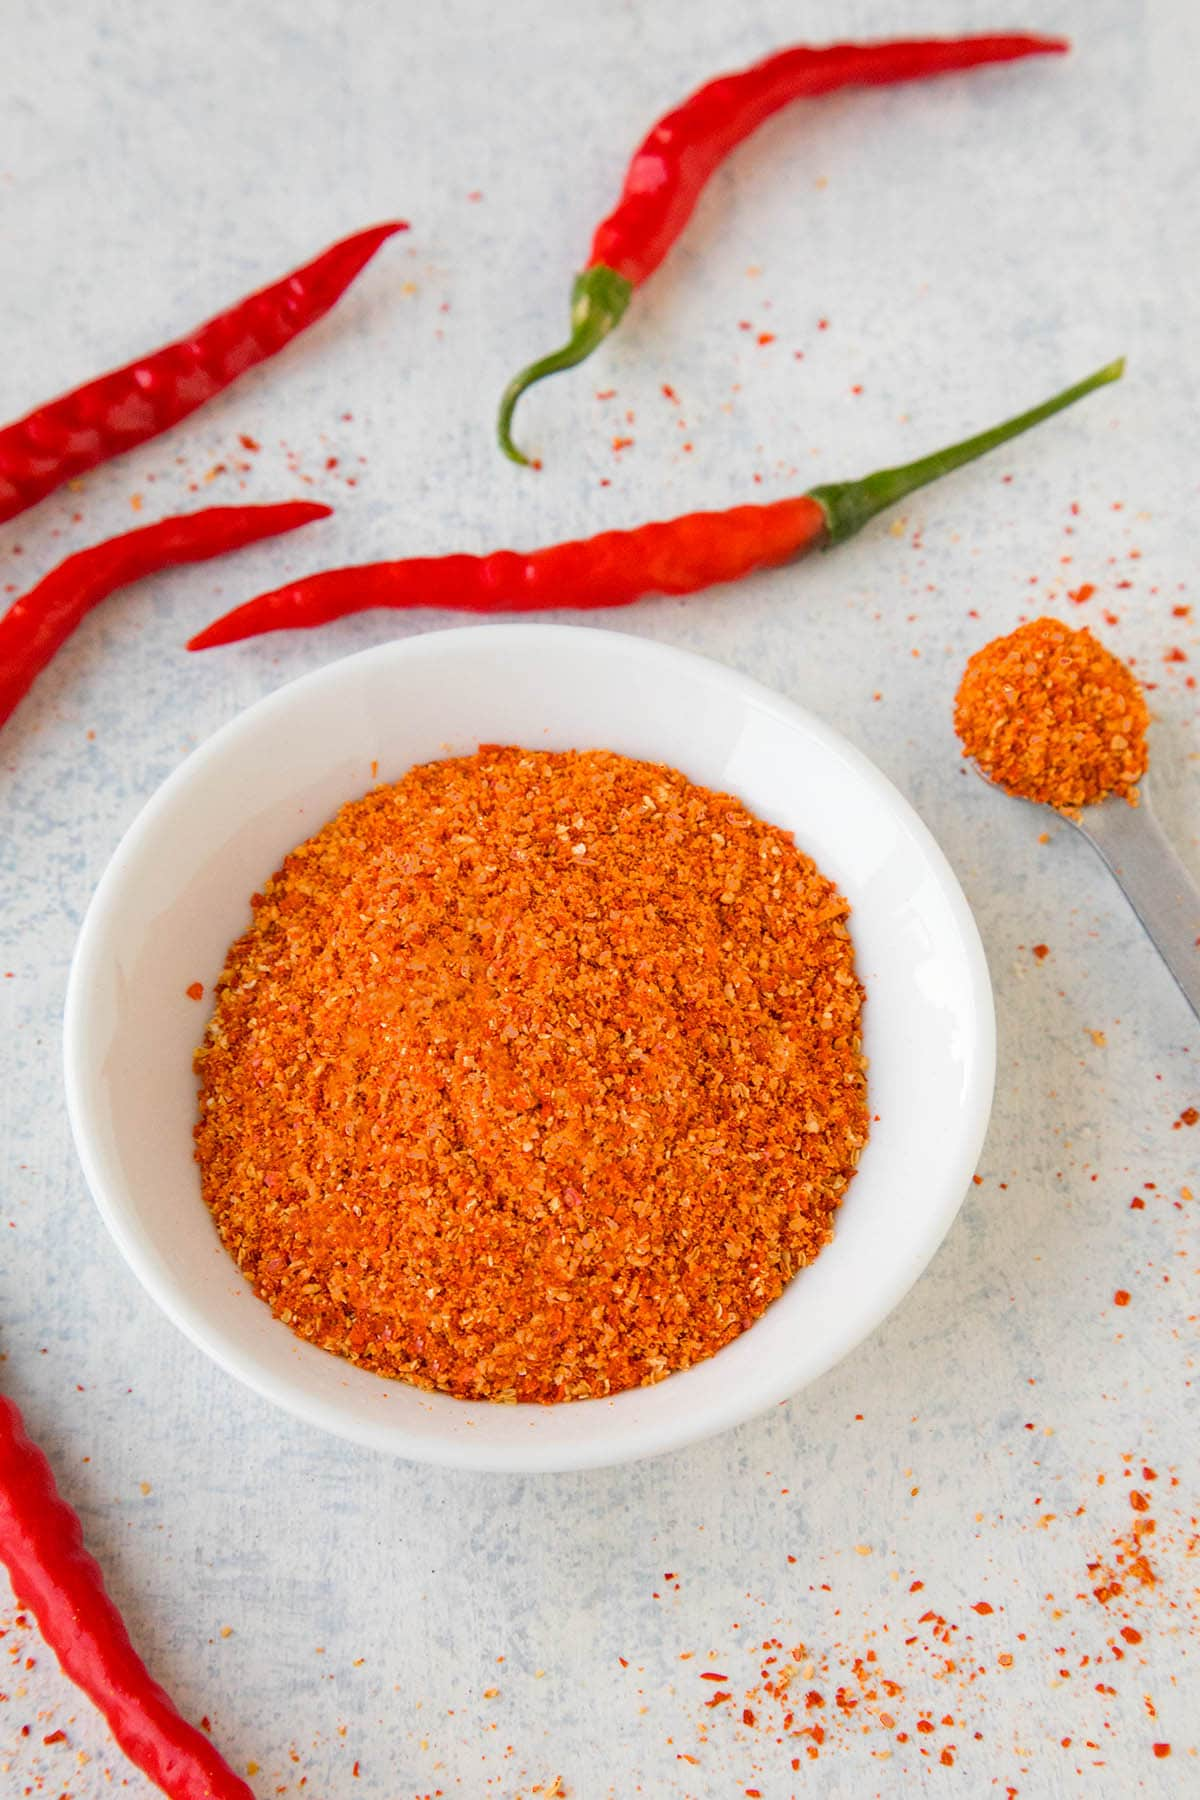 Homemade Cayenne Powder